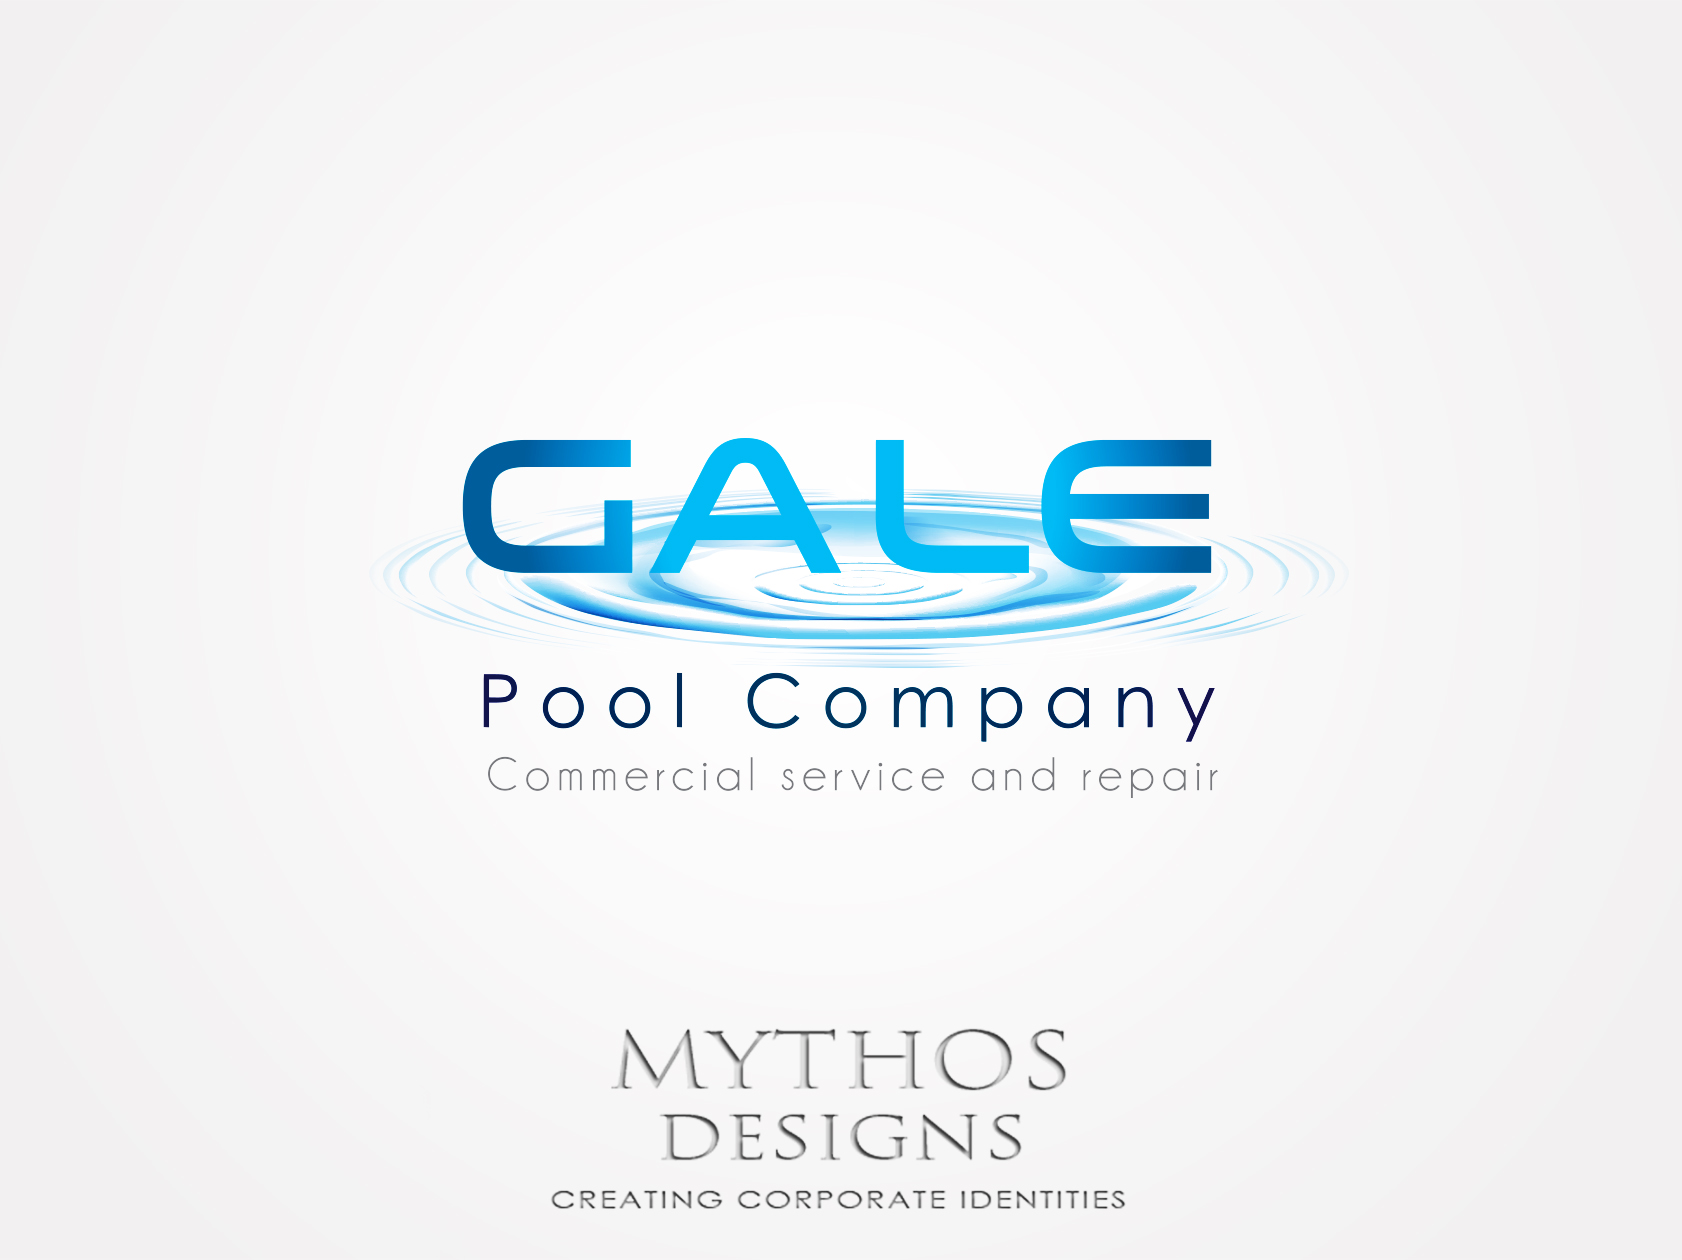 Logo Design by Mythos Designs - Entry No. 153 in the Logo Design Contest Imaginative Logo Design for Gale Pool Company.